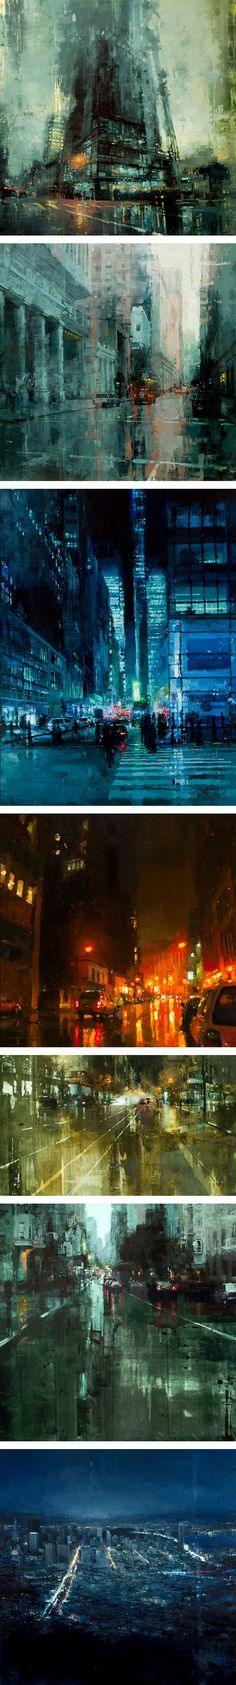 Cityscapes Painted with Oils by Jeremy Mann Cityscapes Painted with Oils by Jeremy Mann. via Monica Brorstad.Cityscapes Painted with Oils by Jeremy Mann. via Monica Brorstad. Illustration Arte, Illustrations, Art Du Monde, Art Graphique, Urban Landscape, Landscape Art, Love Art, Landscape Paintings, Amazing Art